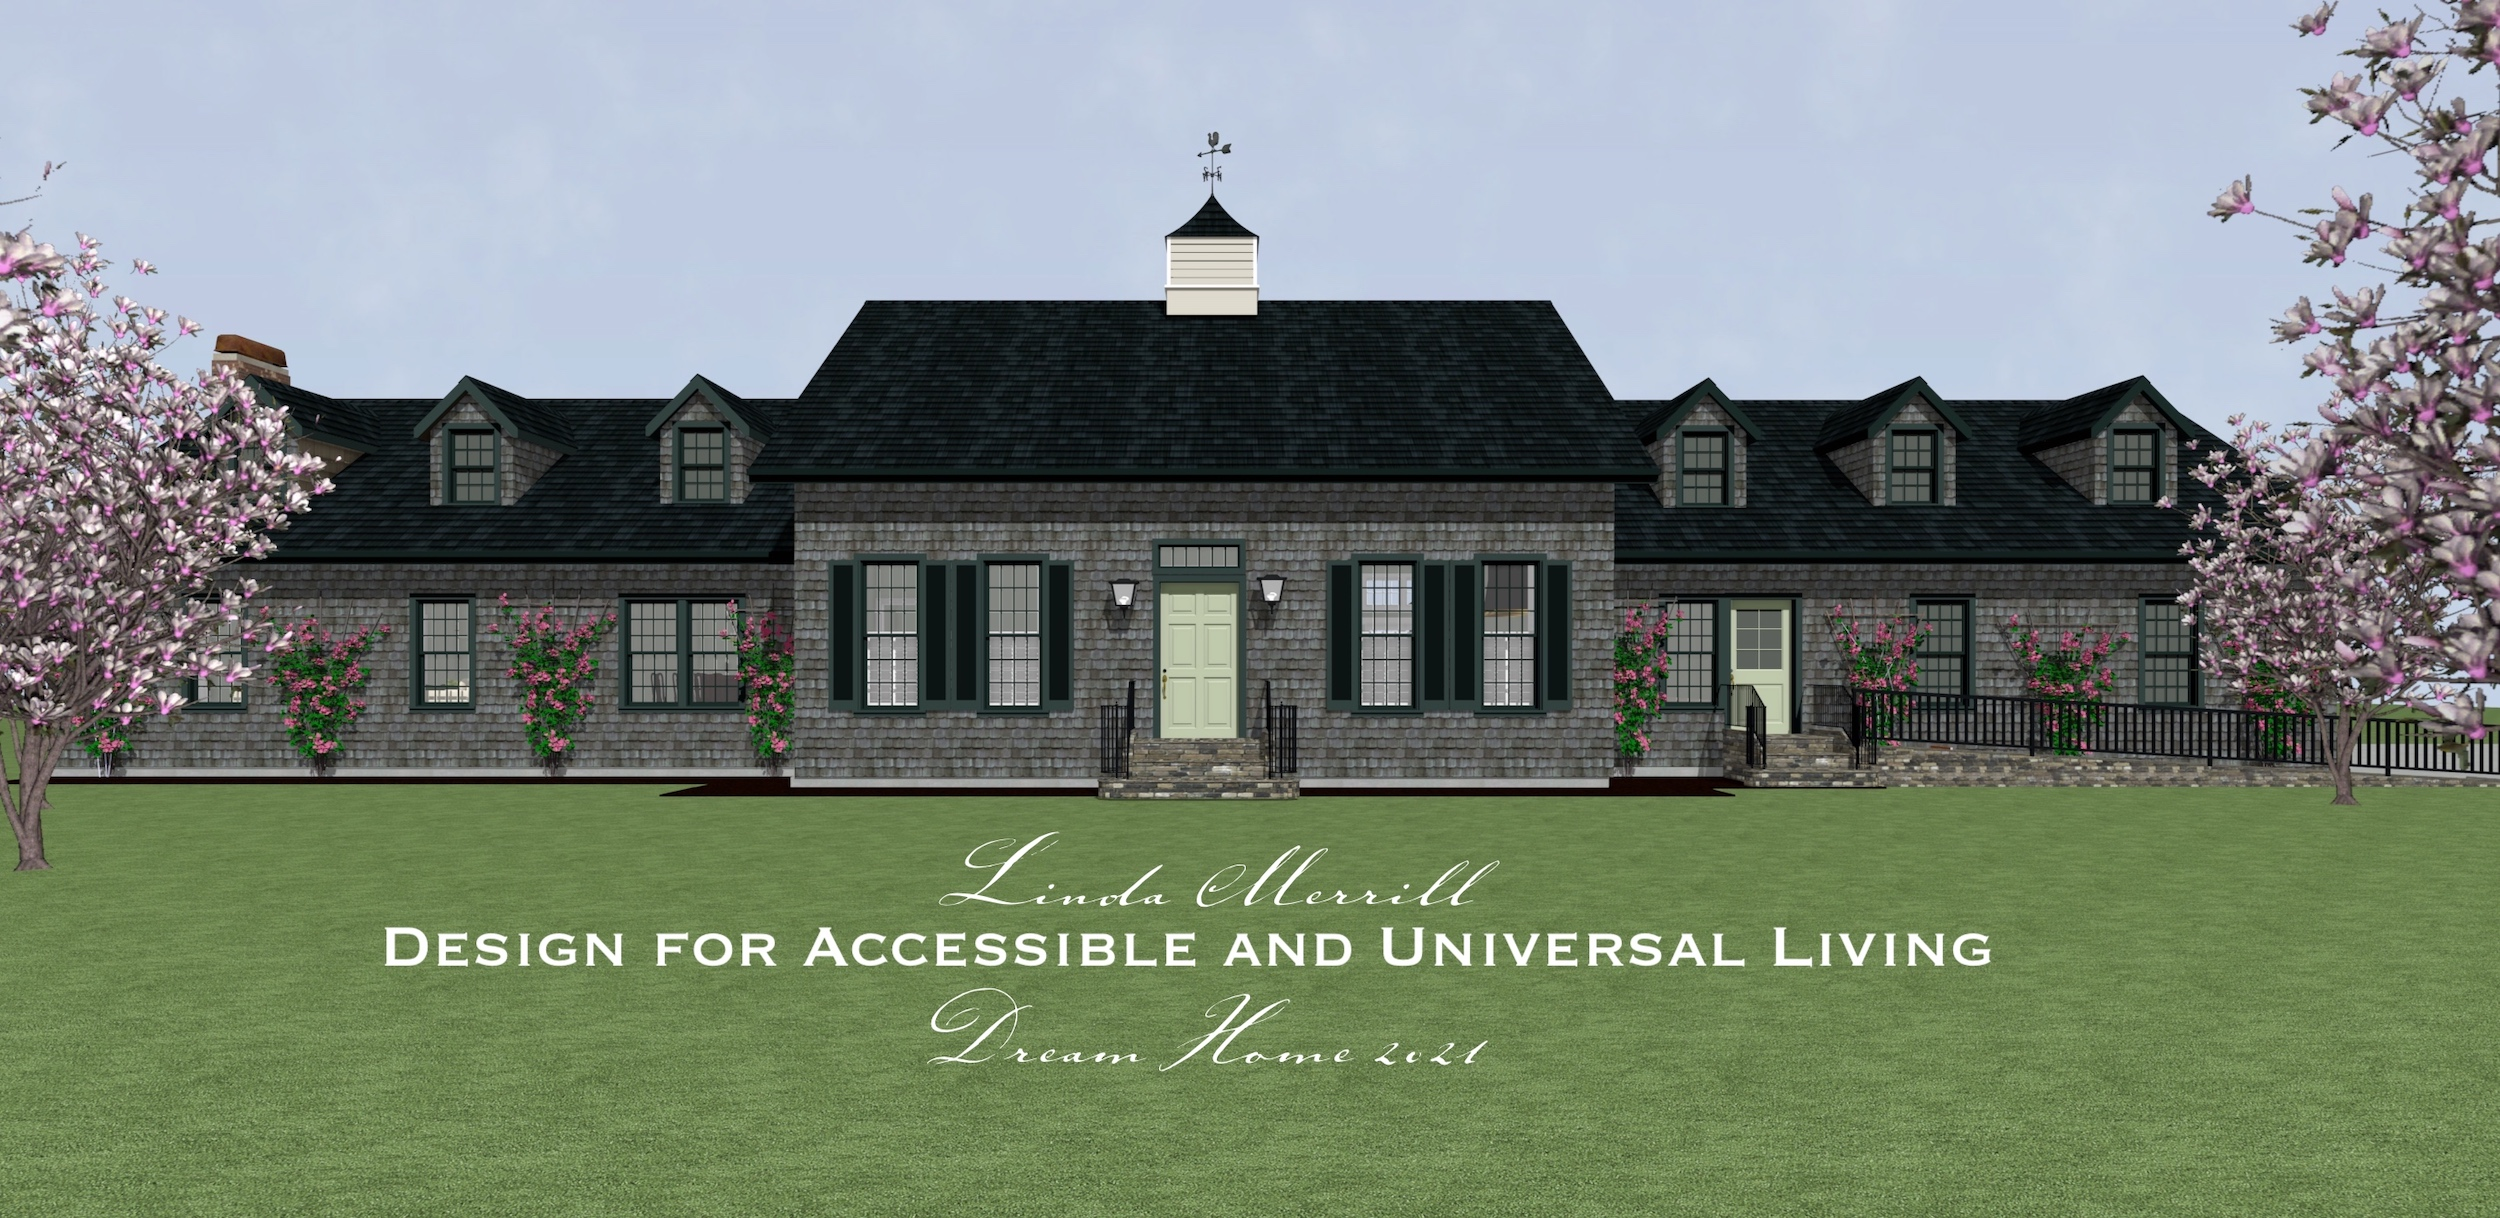 Dream Home front exterior with ramp design for universal accessible living